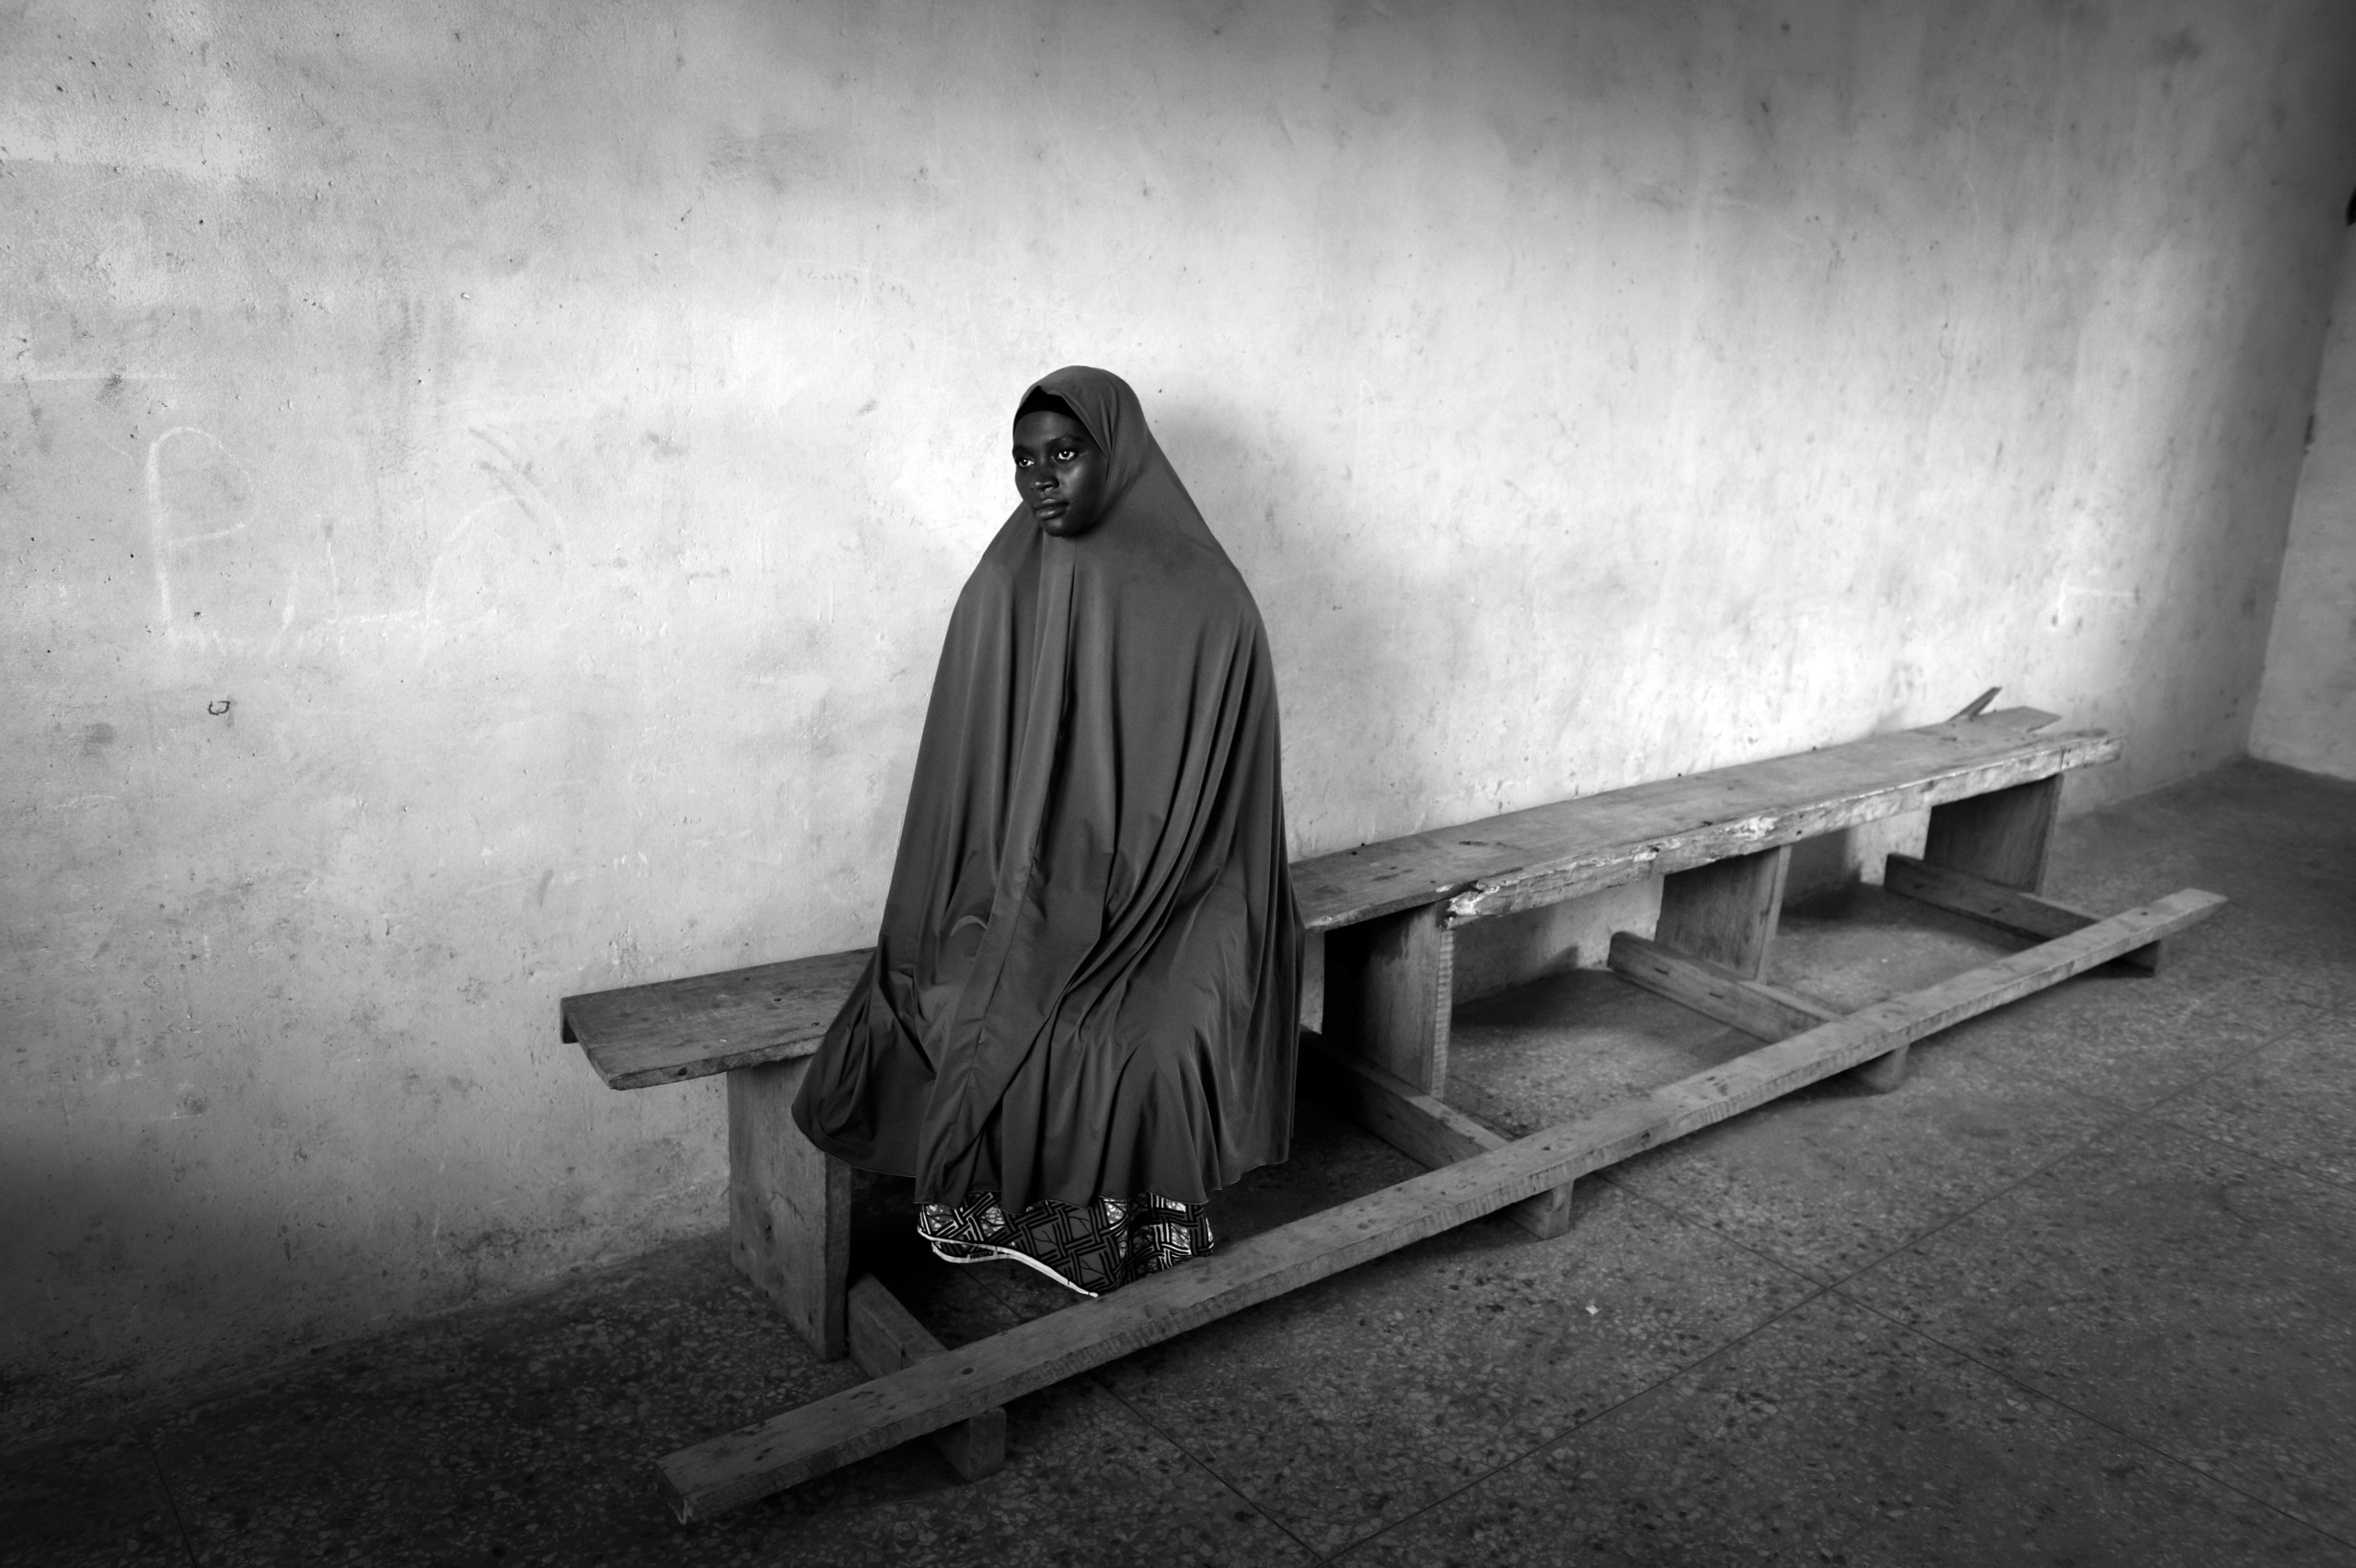 NIGERIA,Kaduna.A Muslim woman waits that her husband picks her up having taken lessons in a Koranic school in a Muslim district of Kaduna.Nearly 4,000 people have died in Nigeria due to the violent conflict over the past decade.The economic and ethnic conflict in the northern states has a religious dimension. It is only with true governance that these conflicting differences could be managed. As elsewhere in Nigeria, residents accuse both local and state government officials for promoting identity-based divisions to advance their own political agendas.